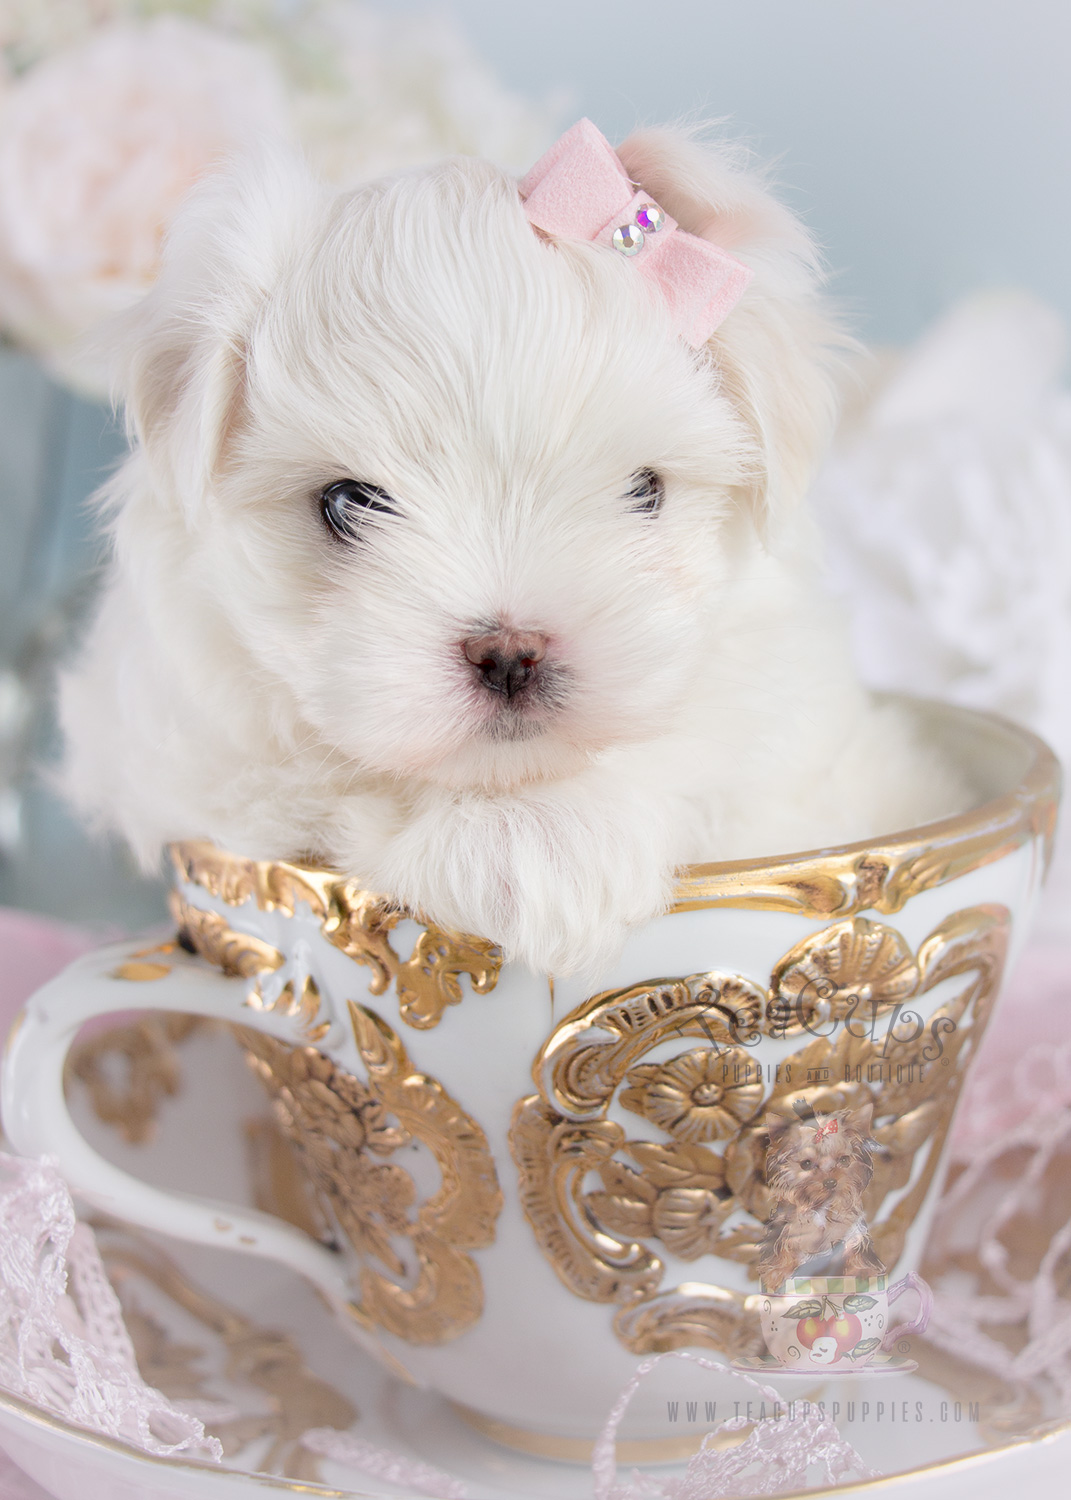 Adorable Maltese Puppy For Sale Teacup Puppies 250